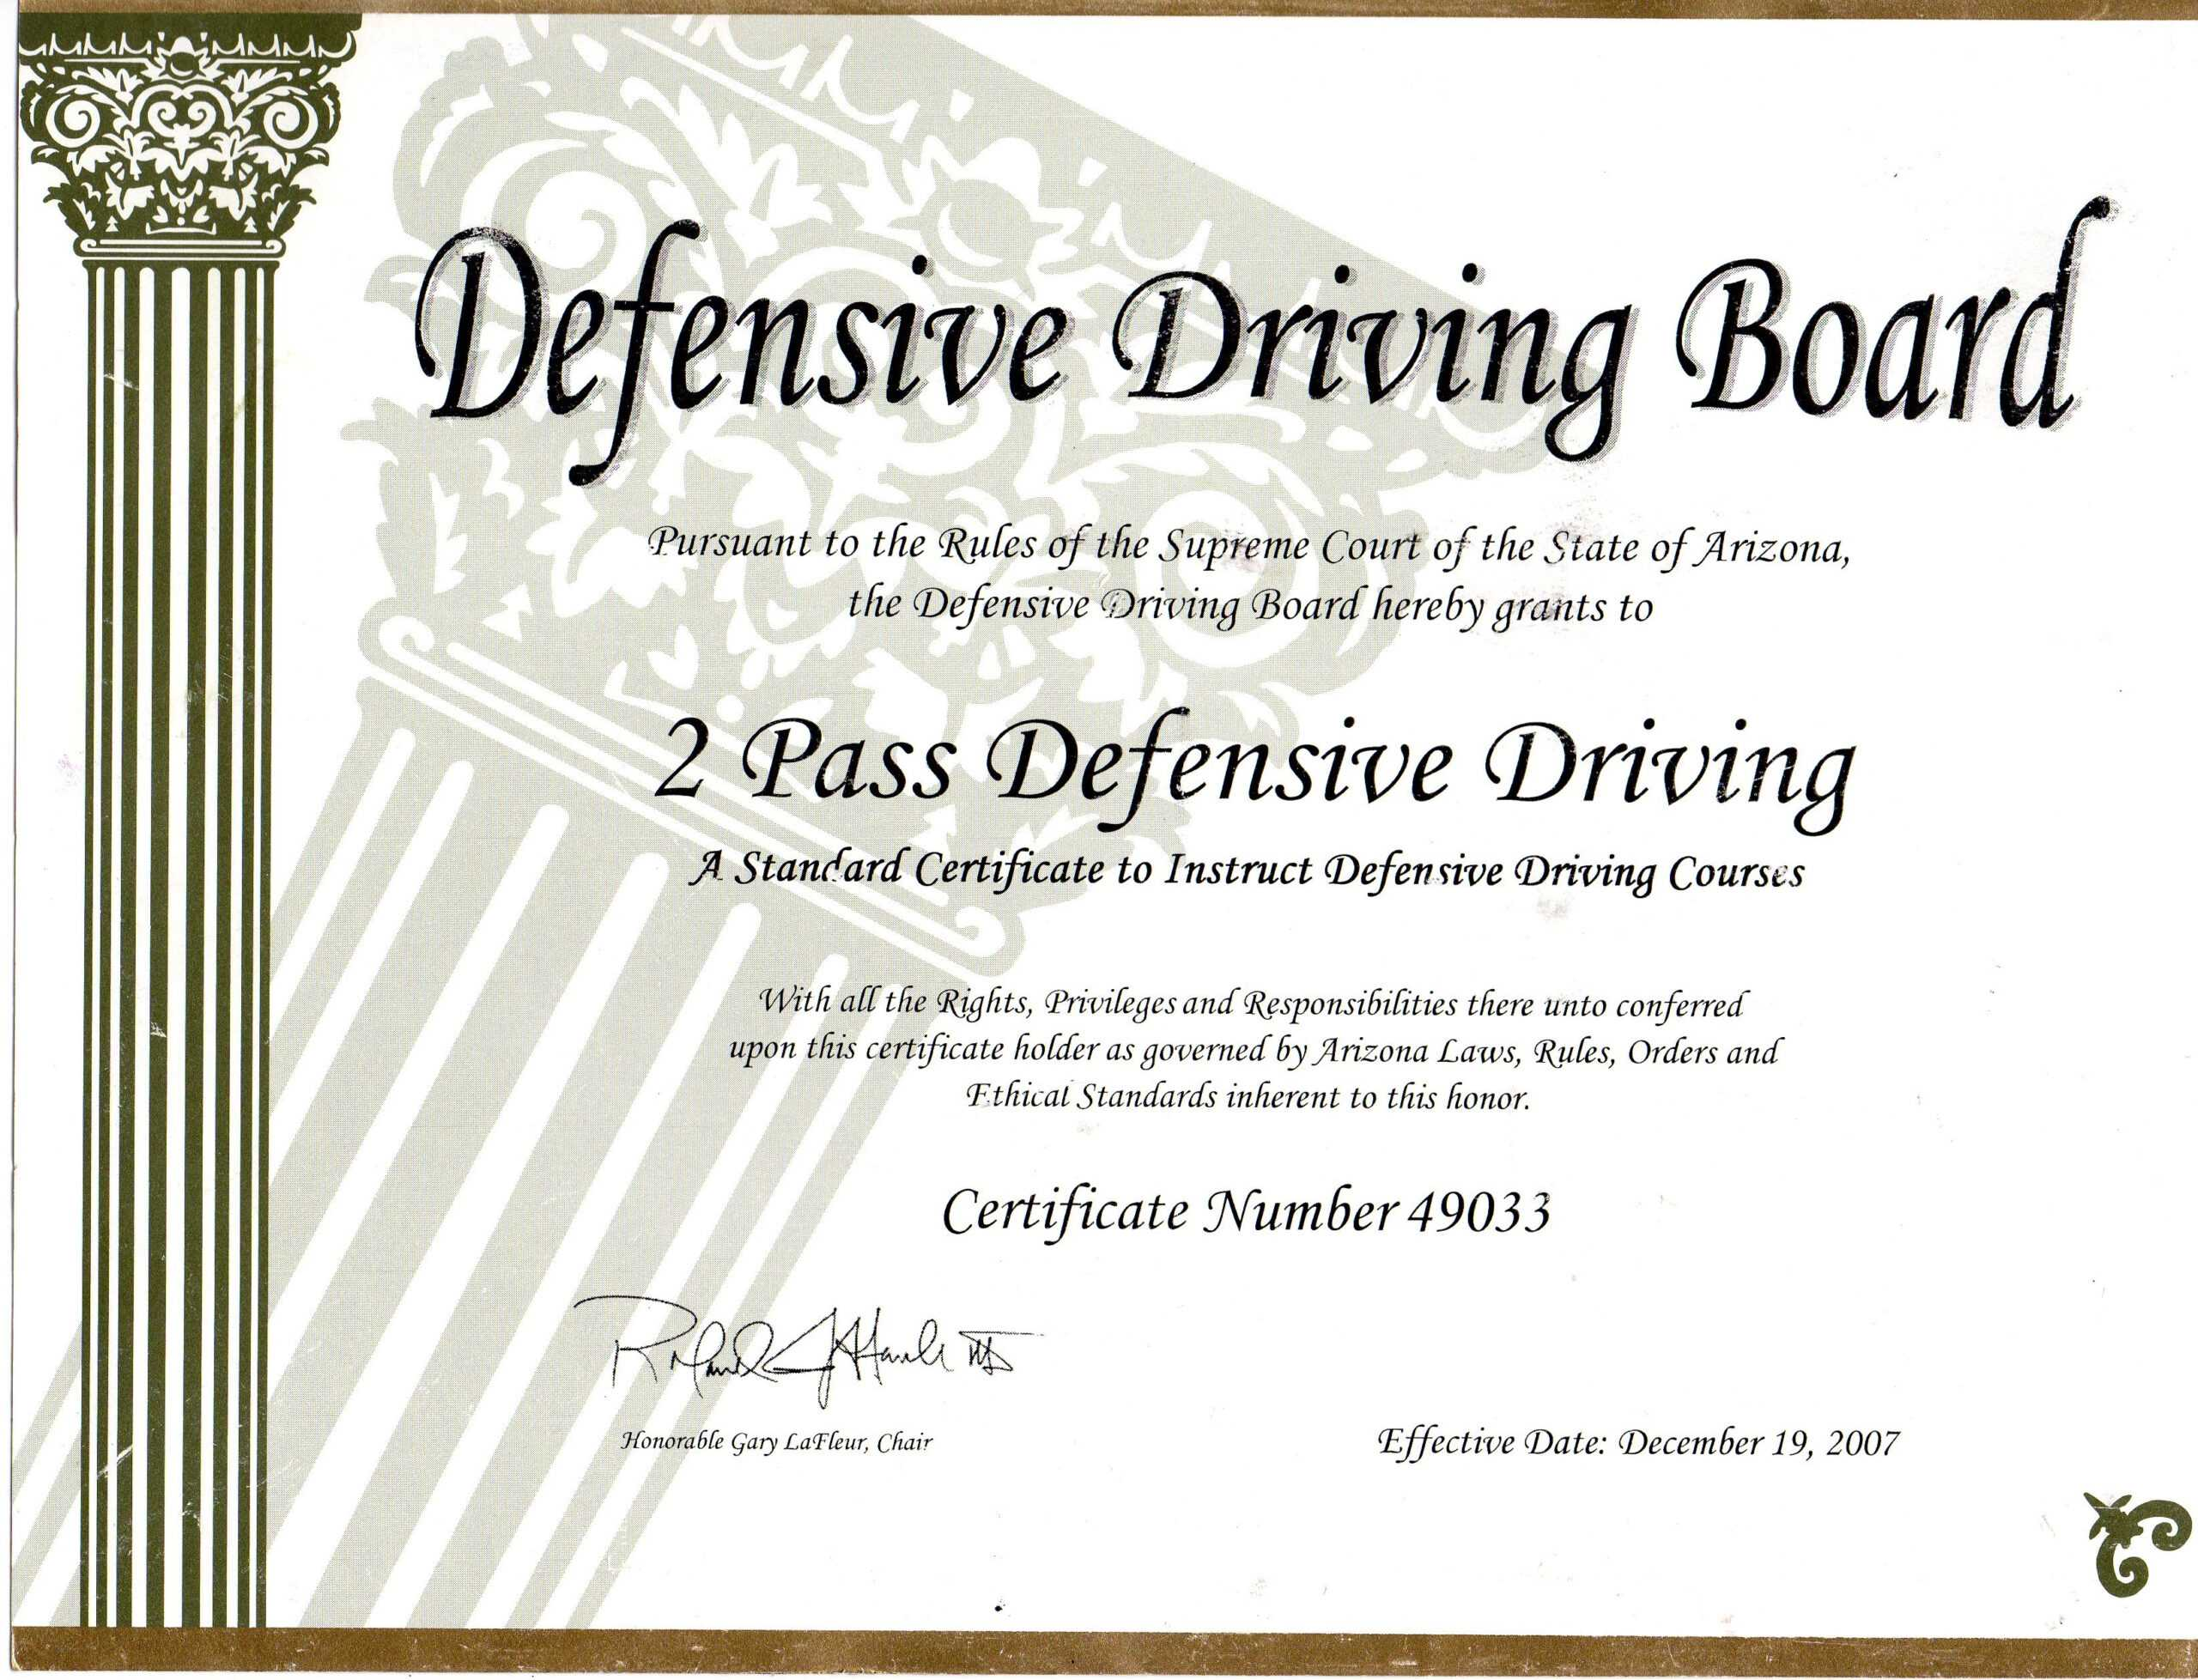 Safe Driving Certificate Template ] - Some Appreciation Within Safe Driving Certificate Template